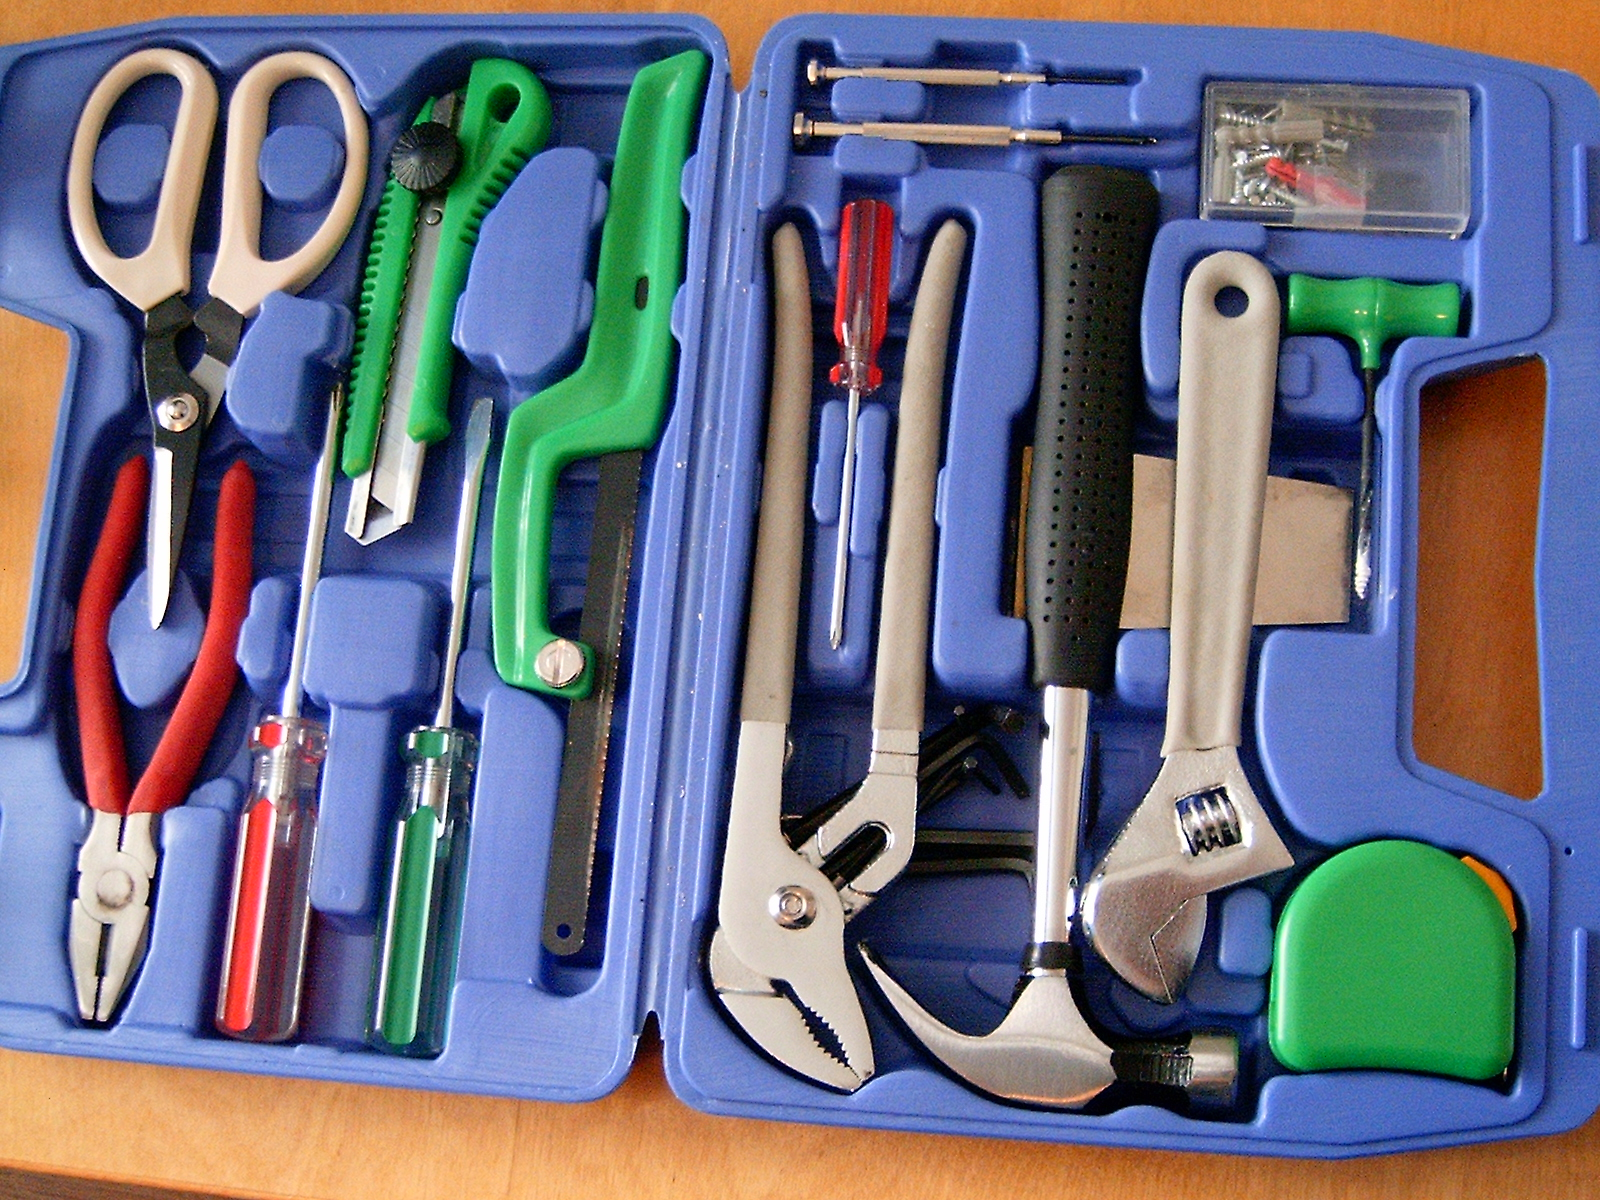 """20060513 toolbox"" by Per Erik Strandberg sv:User:PER9000 - Own work. Licensed under CC BY-SA 2.5 via Wikimedia Commons - http://commons.wikimedia.org/wiki/File:20060513_toolbox.jpg#/media/File:20060513_toolbox.jpg"